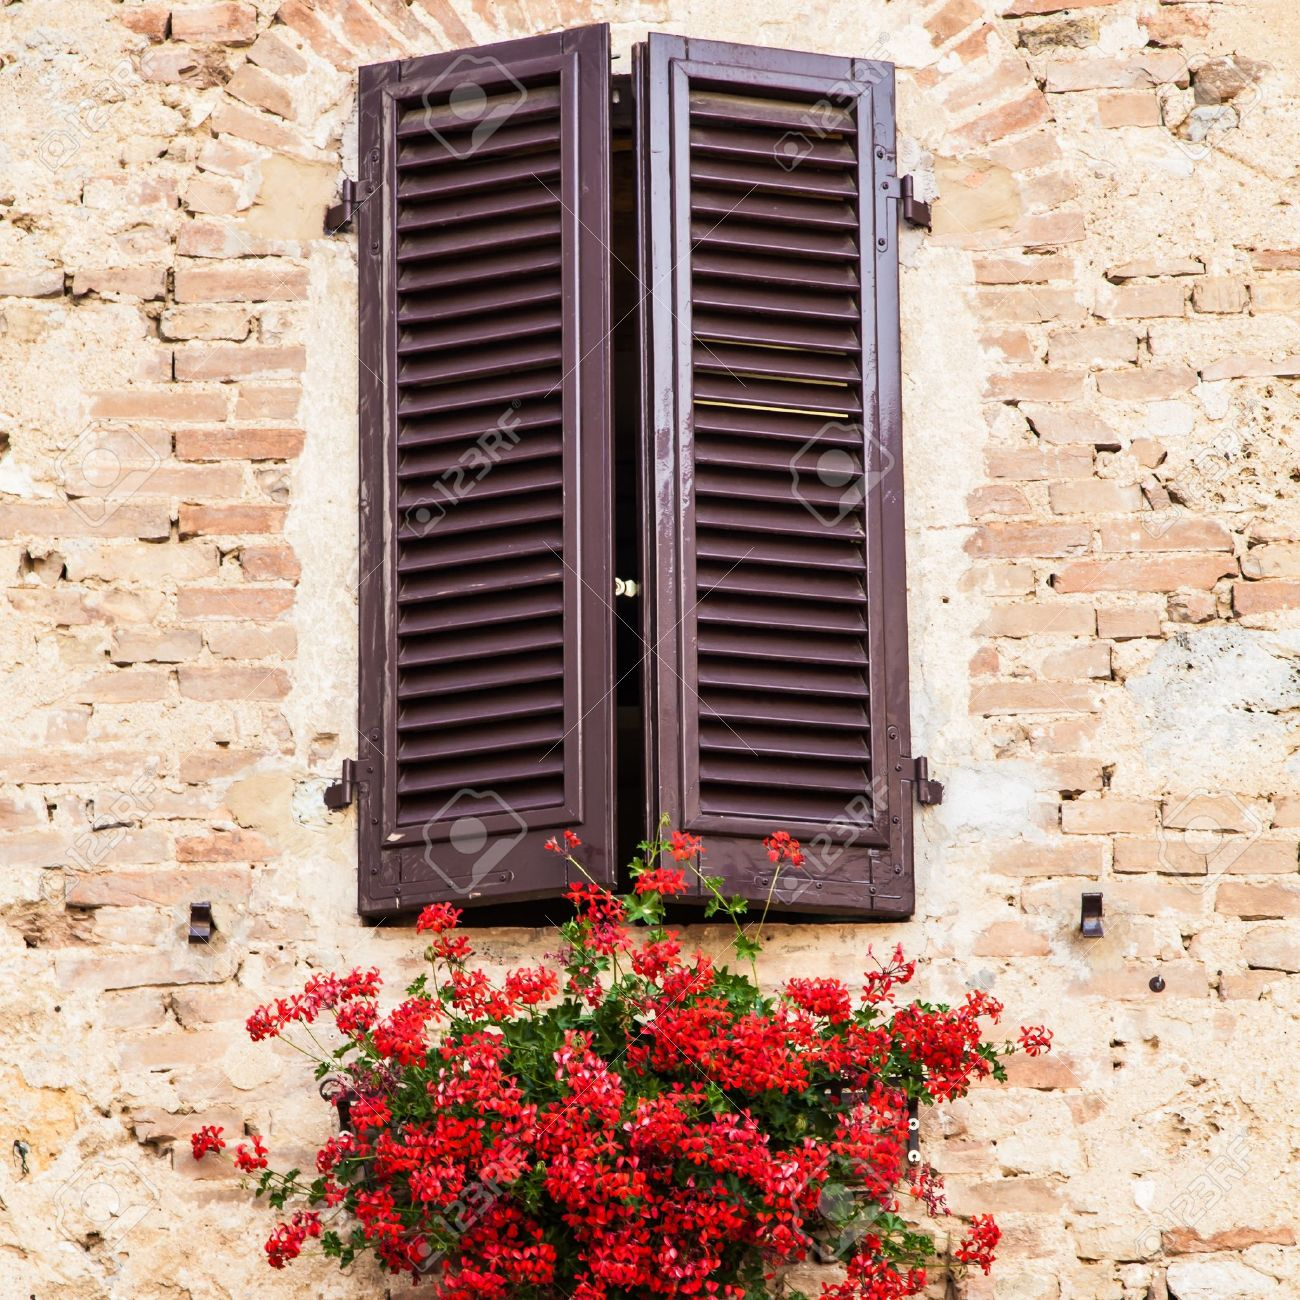 Old Windows Old Windows Stock Photos Pictures Royalty Free Old Windows